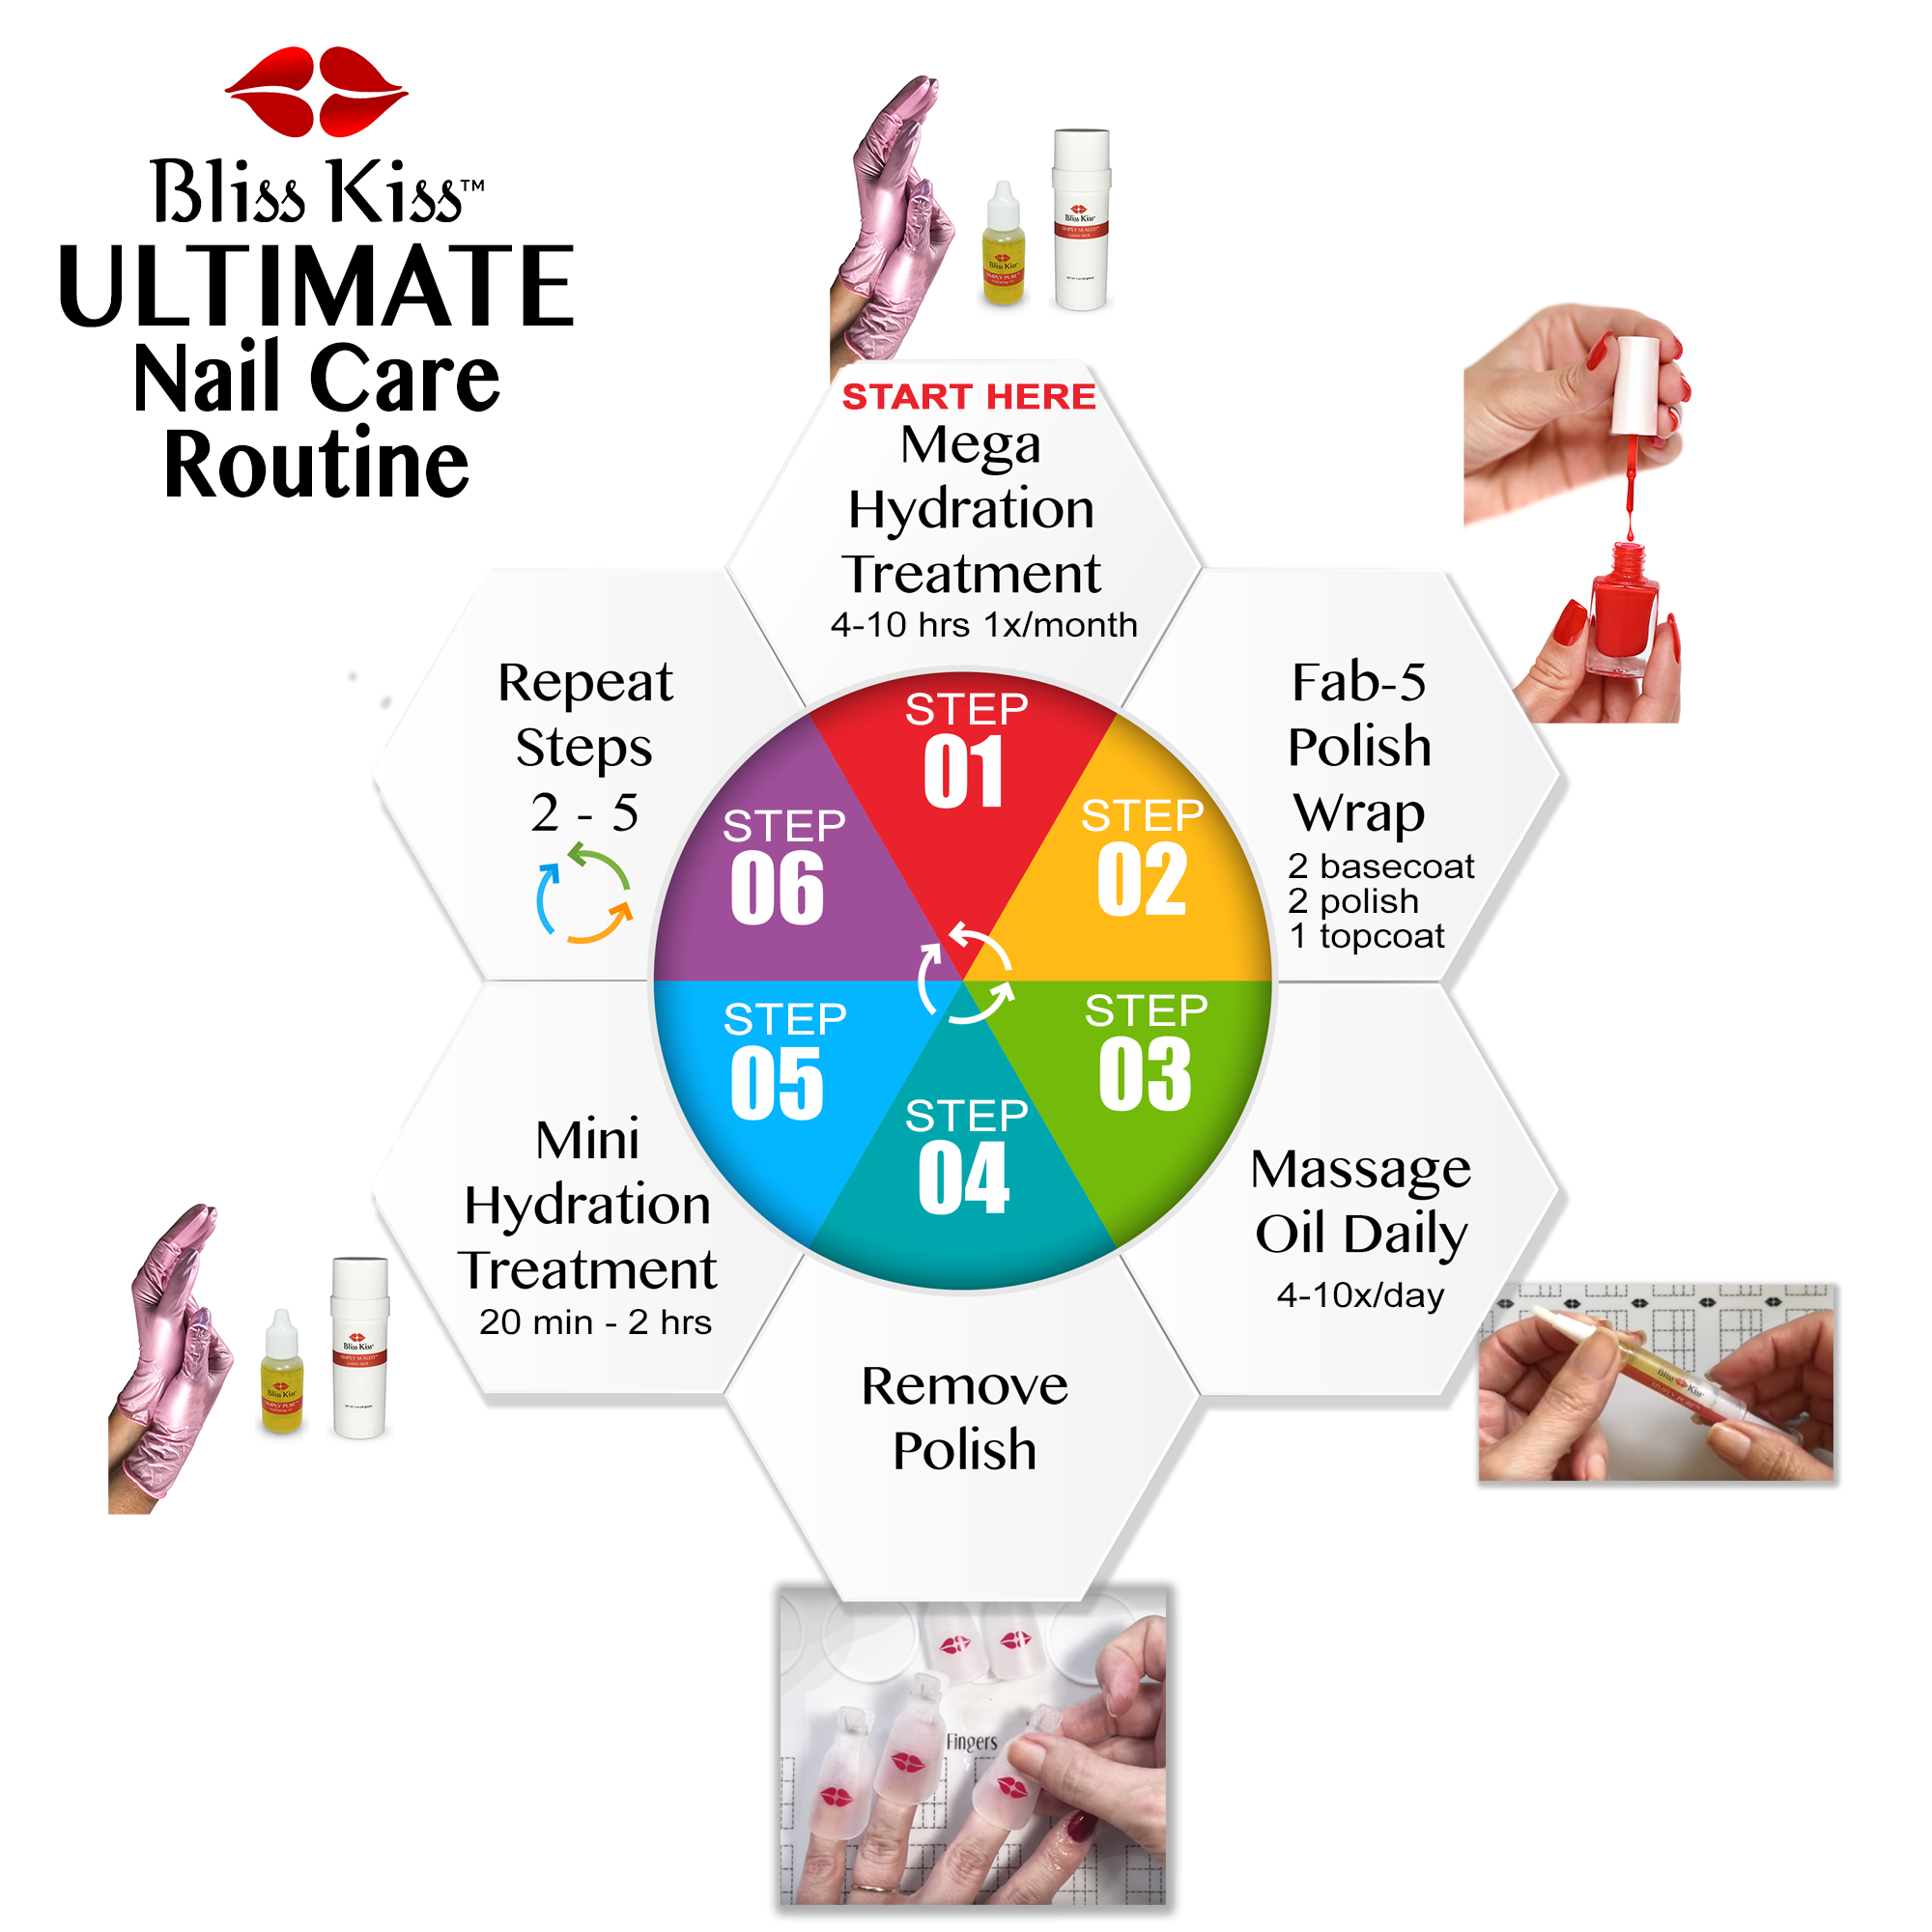 The Bliss Kiss™ Ultimate Nail Care Routine